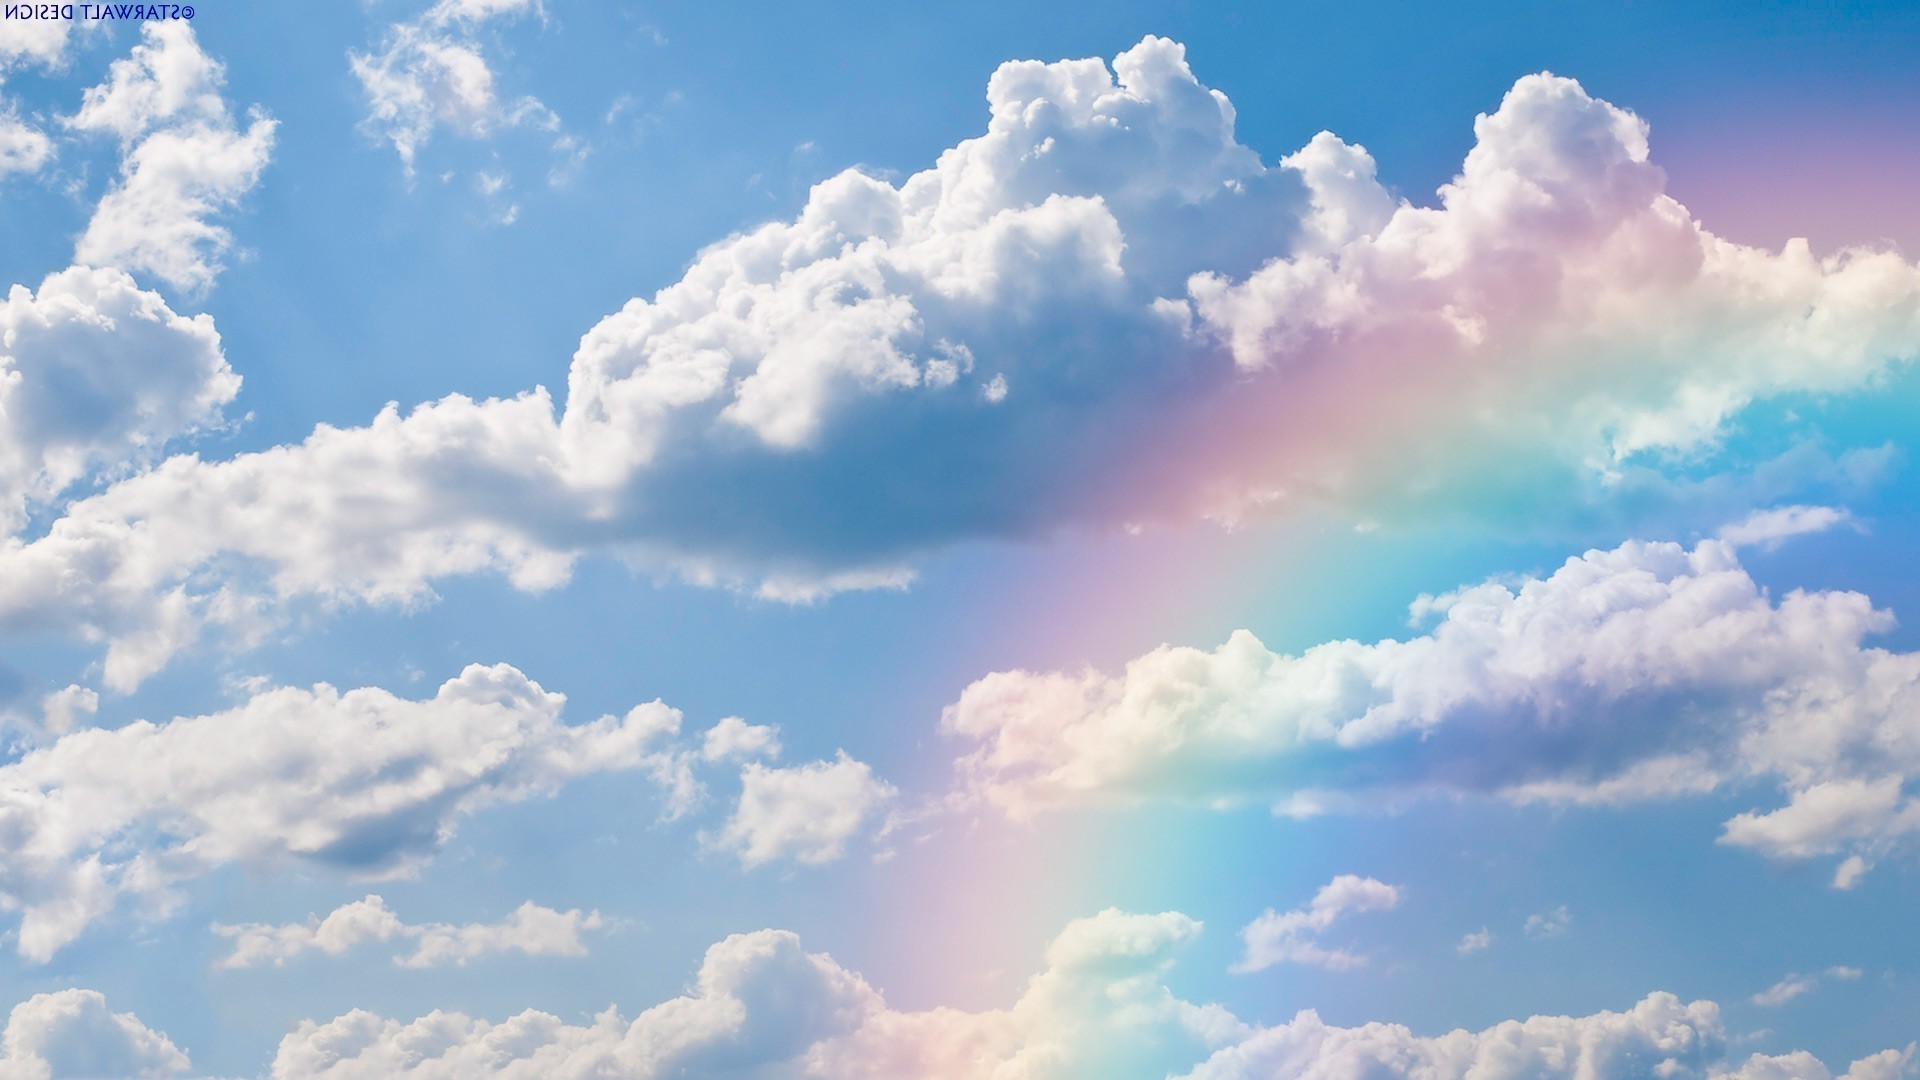 Real Rainbows and Clouds HD Wallpaper, Background Images